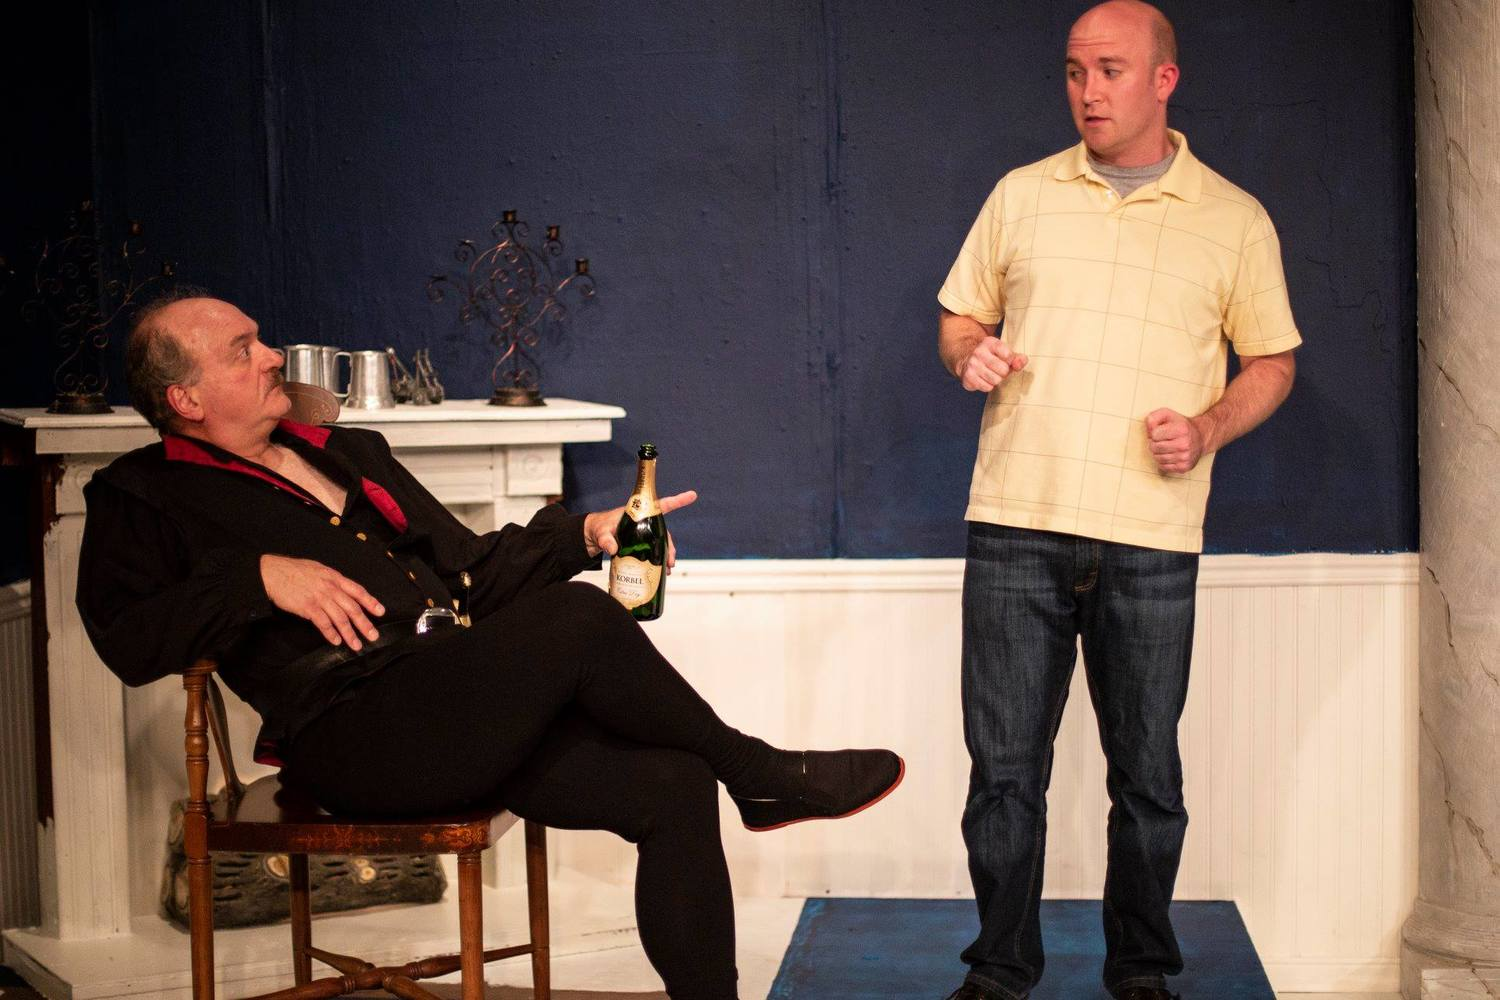 BWW Review: I HATE HAMLET at Oyster Mill Playhouse